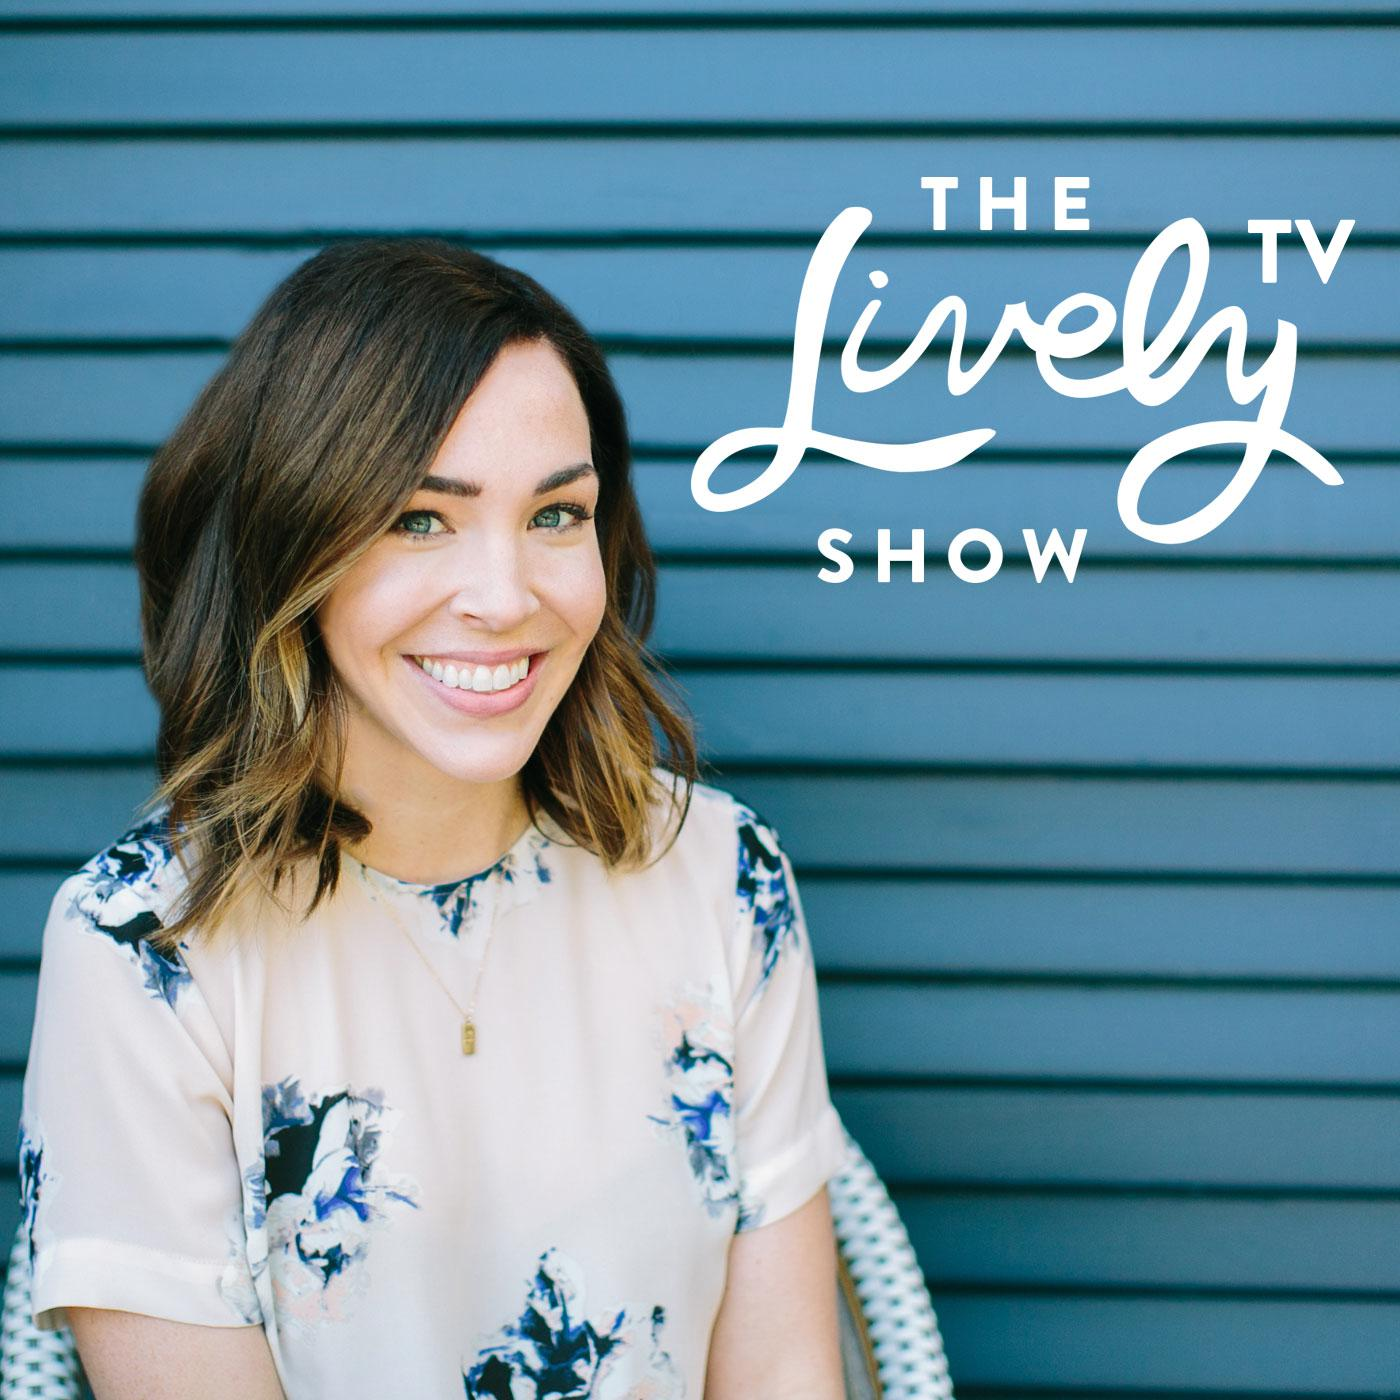 The Lively TV Show (podcast) - Jess Lively | Podcasts to listen to for personal growth